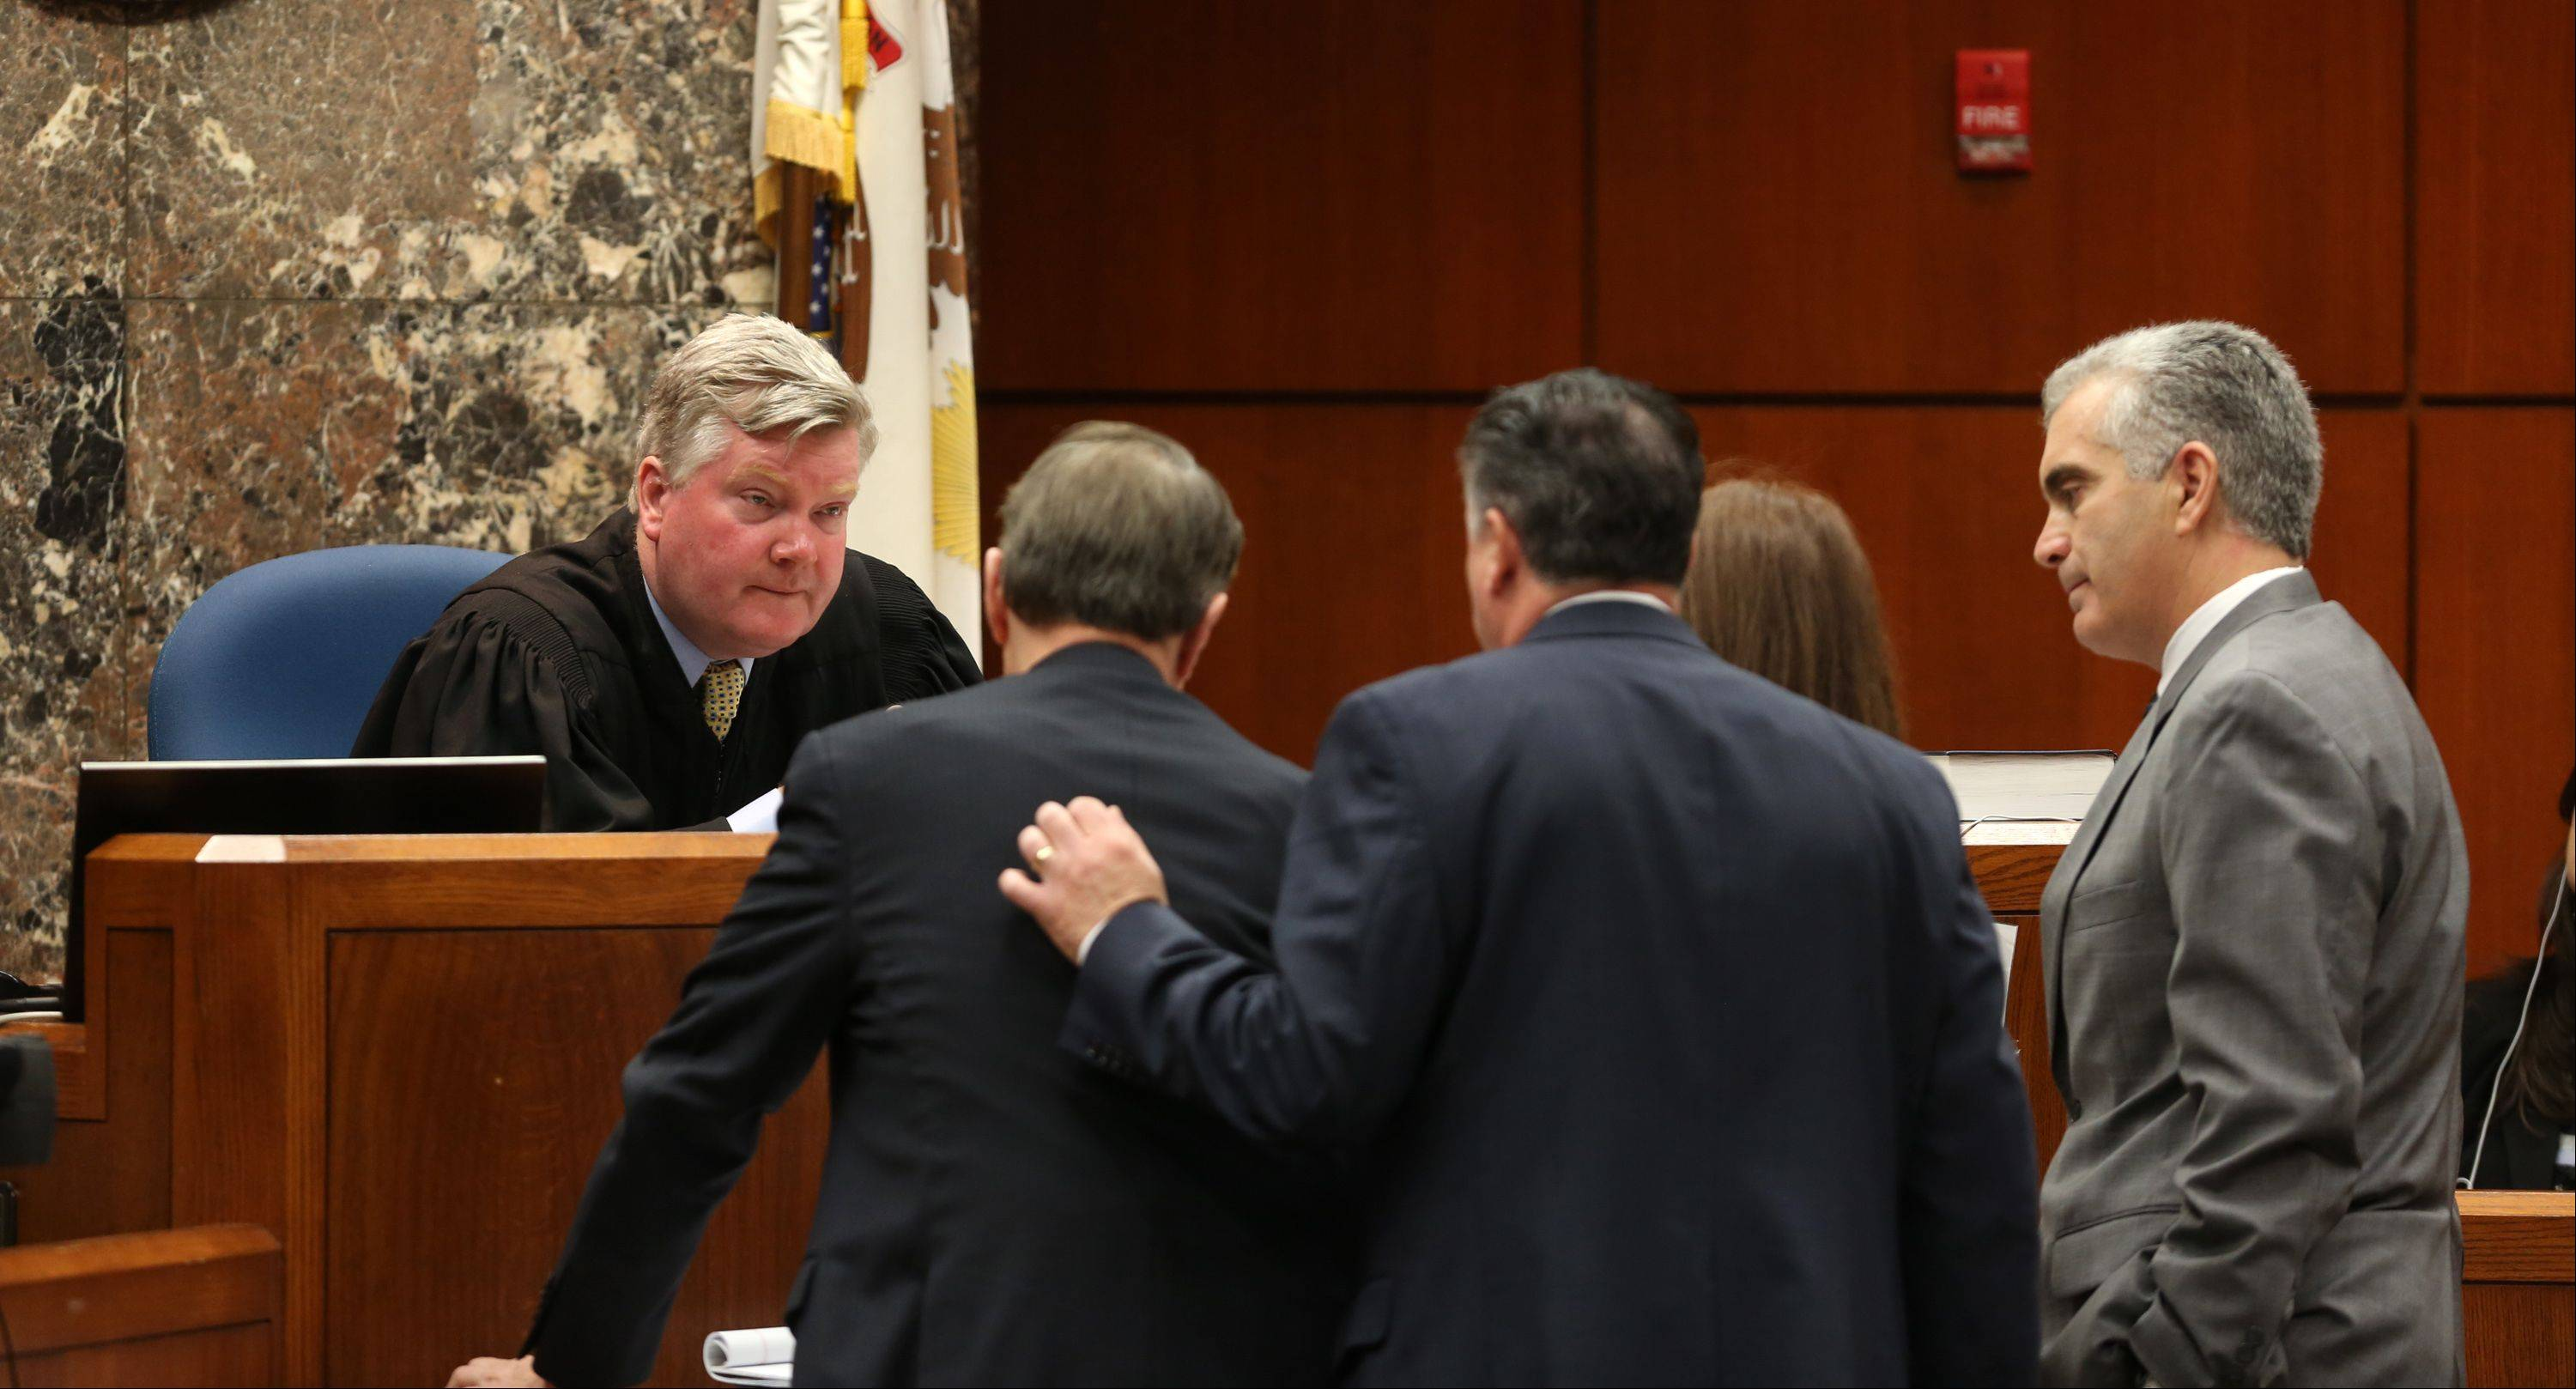 Judge Daniel Guerin confers with attorneys during the Johnny Borizov trial on Thursday. Defense attorneys Paul DeLuca and Richard Kling are to the left, while Assistant State's Attorneys Amanda Meindl and Joe Ruggiero are on the right.